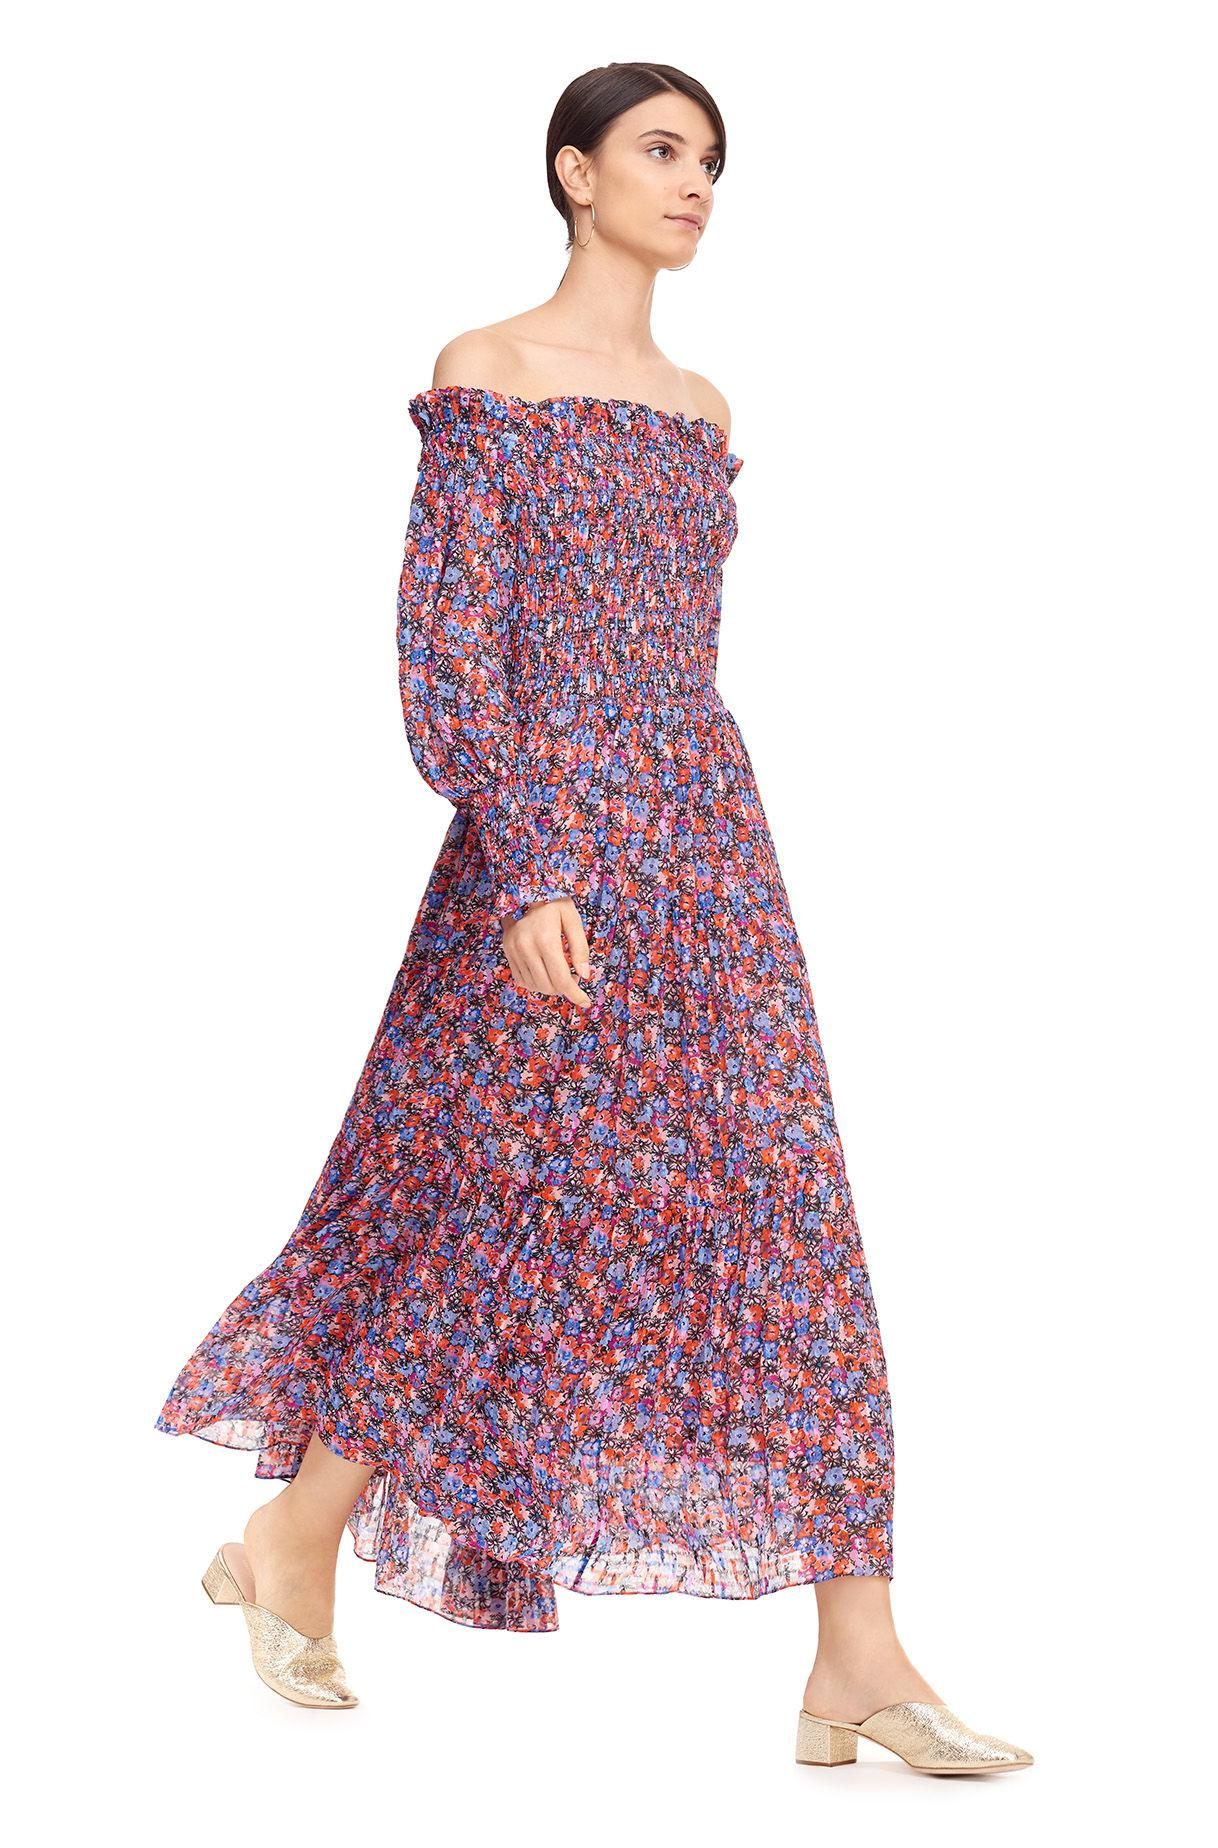 bfd2538d0a12 Lyst - Rebecca Taylor Off-the-shoulder Cosmic Fleur Print Dress